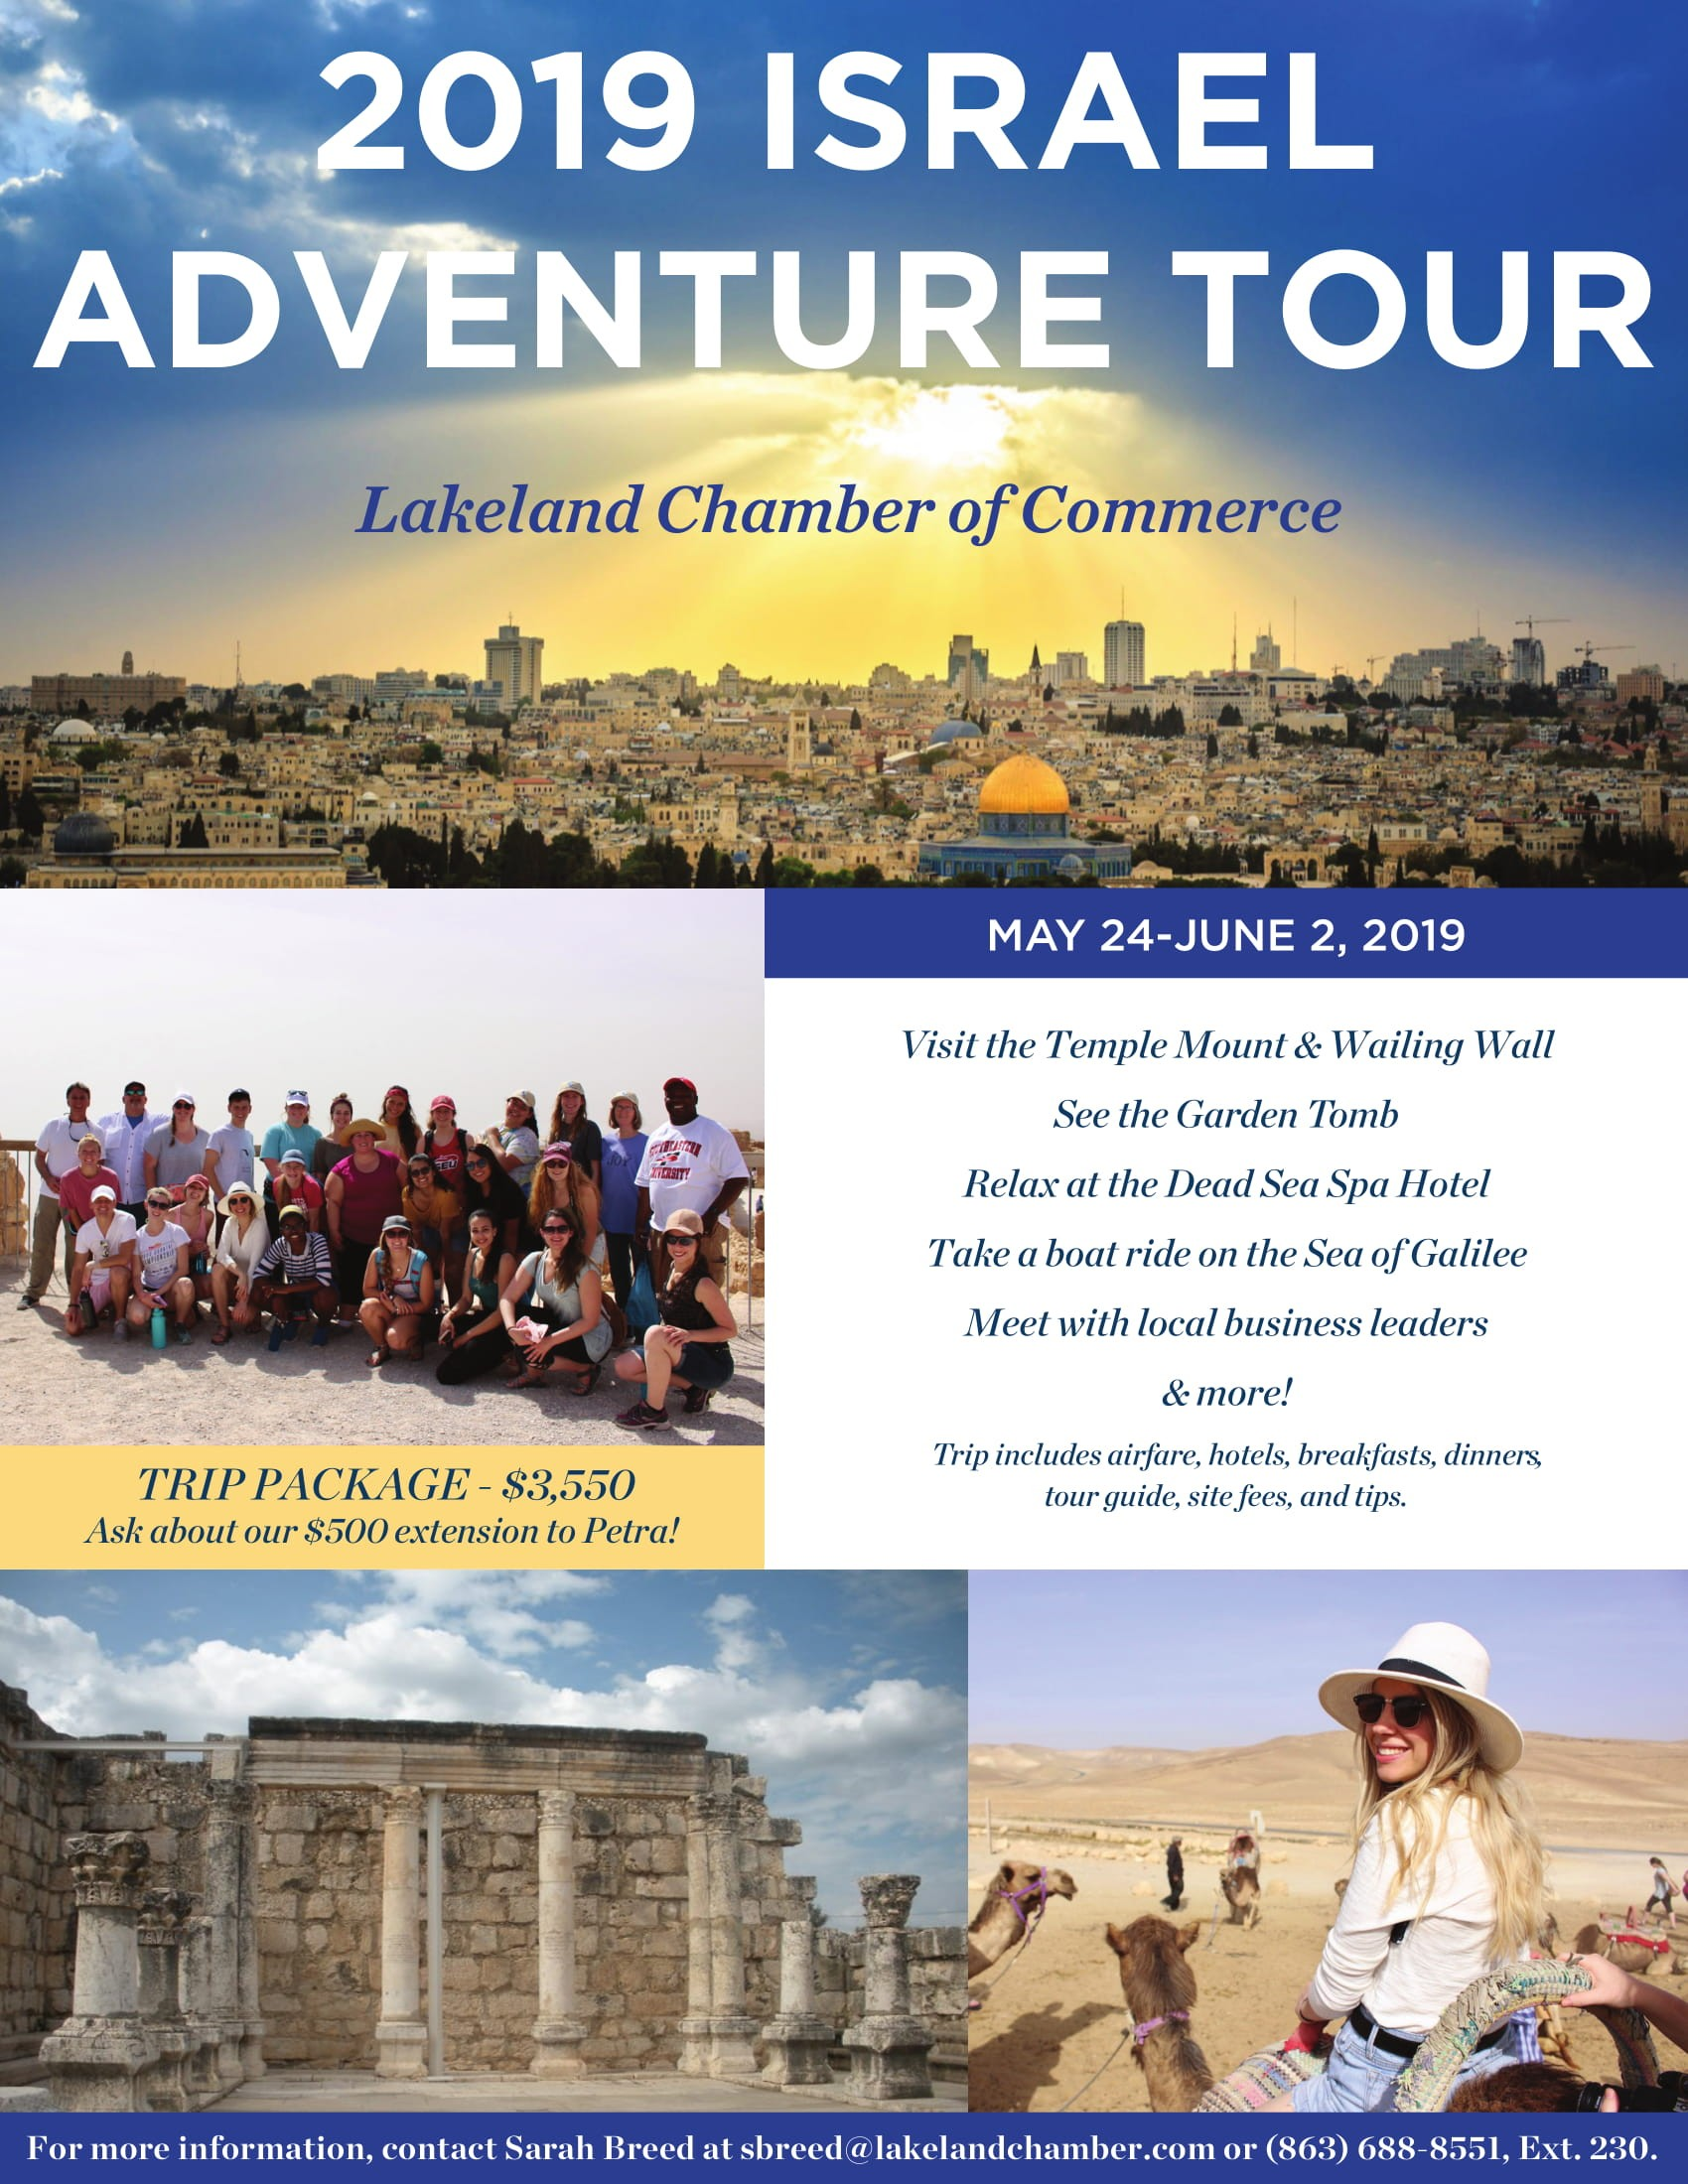 March 2019 Calendar Landscape Más Arriba-a-fecha Travel with the Lakeland Chamber the israel Adventure May 24 Of March 2019 Calendar Landscape Más Recientemente Liberado December 2019 Calendar